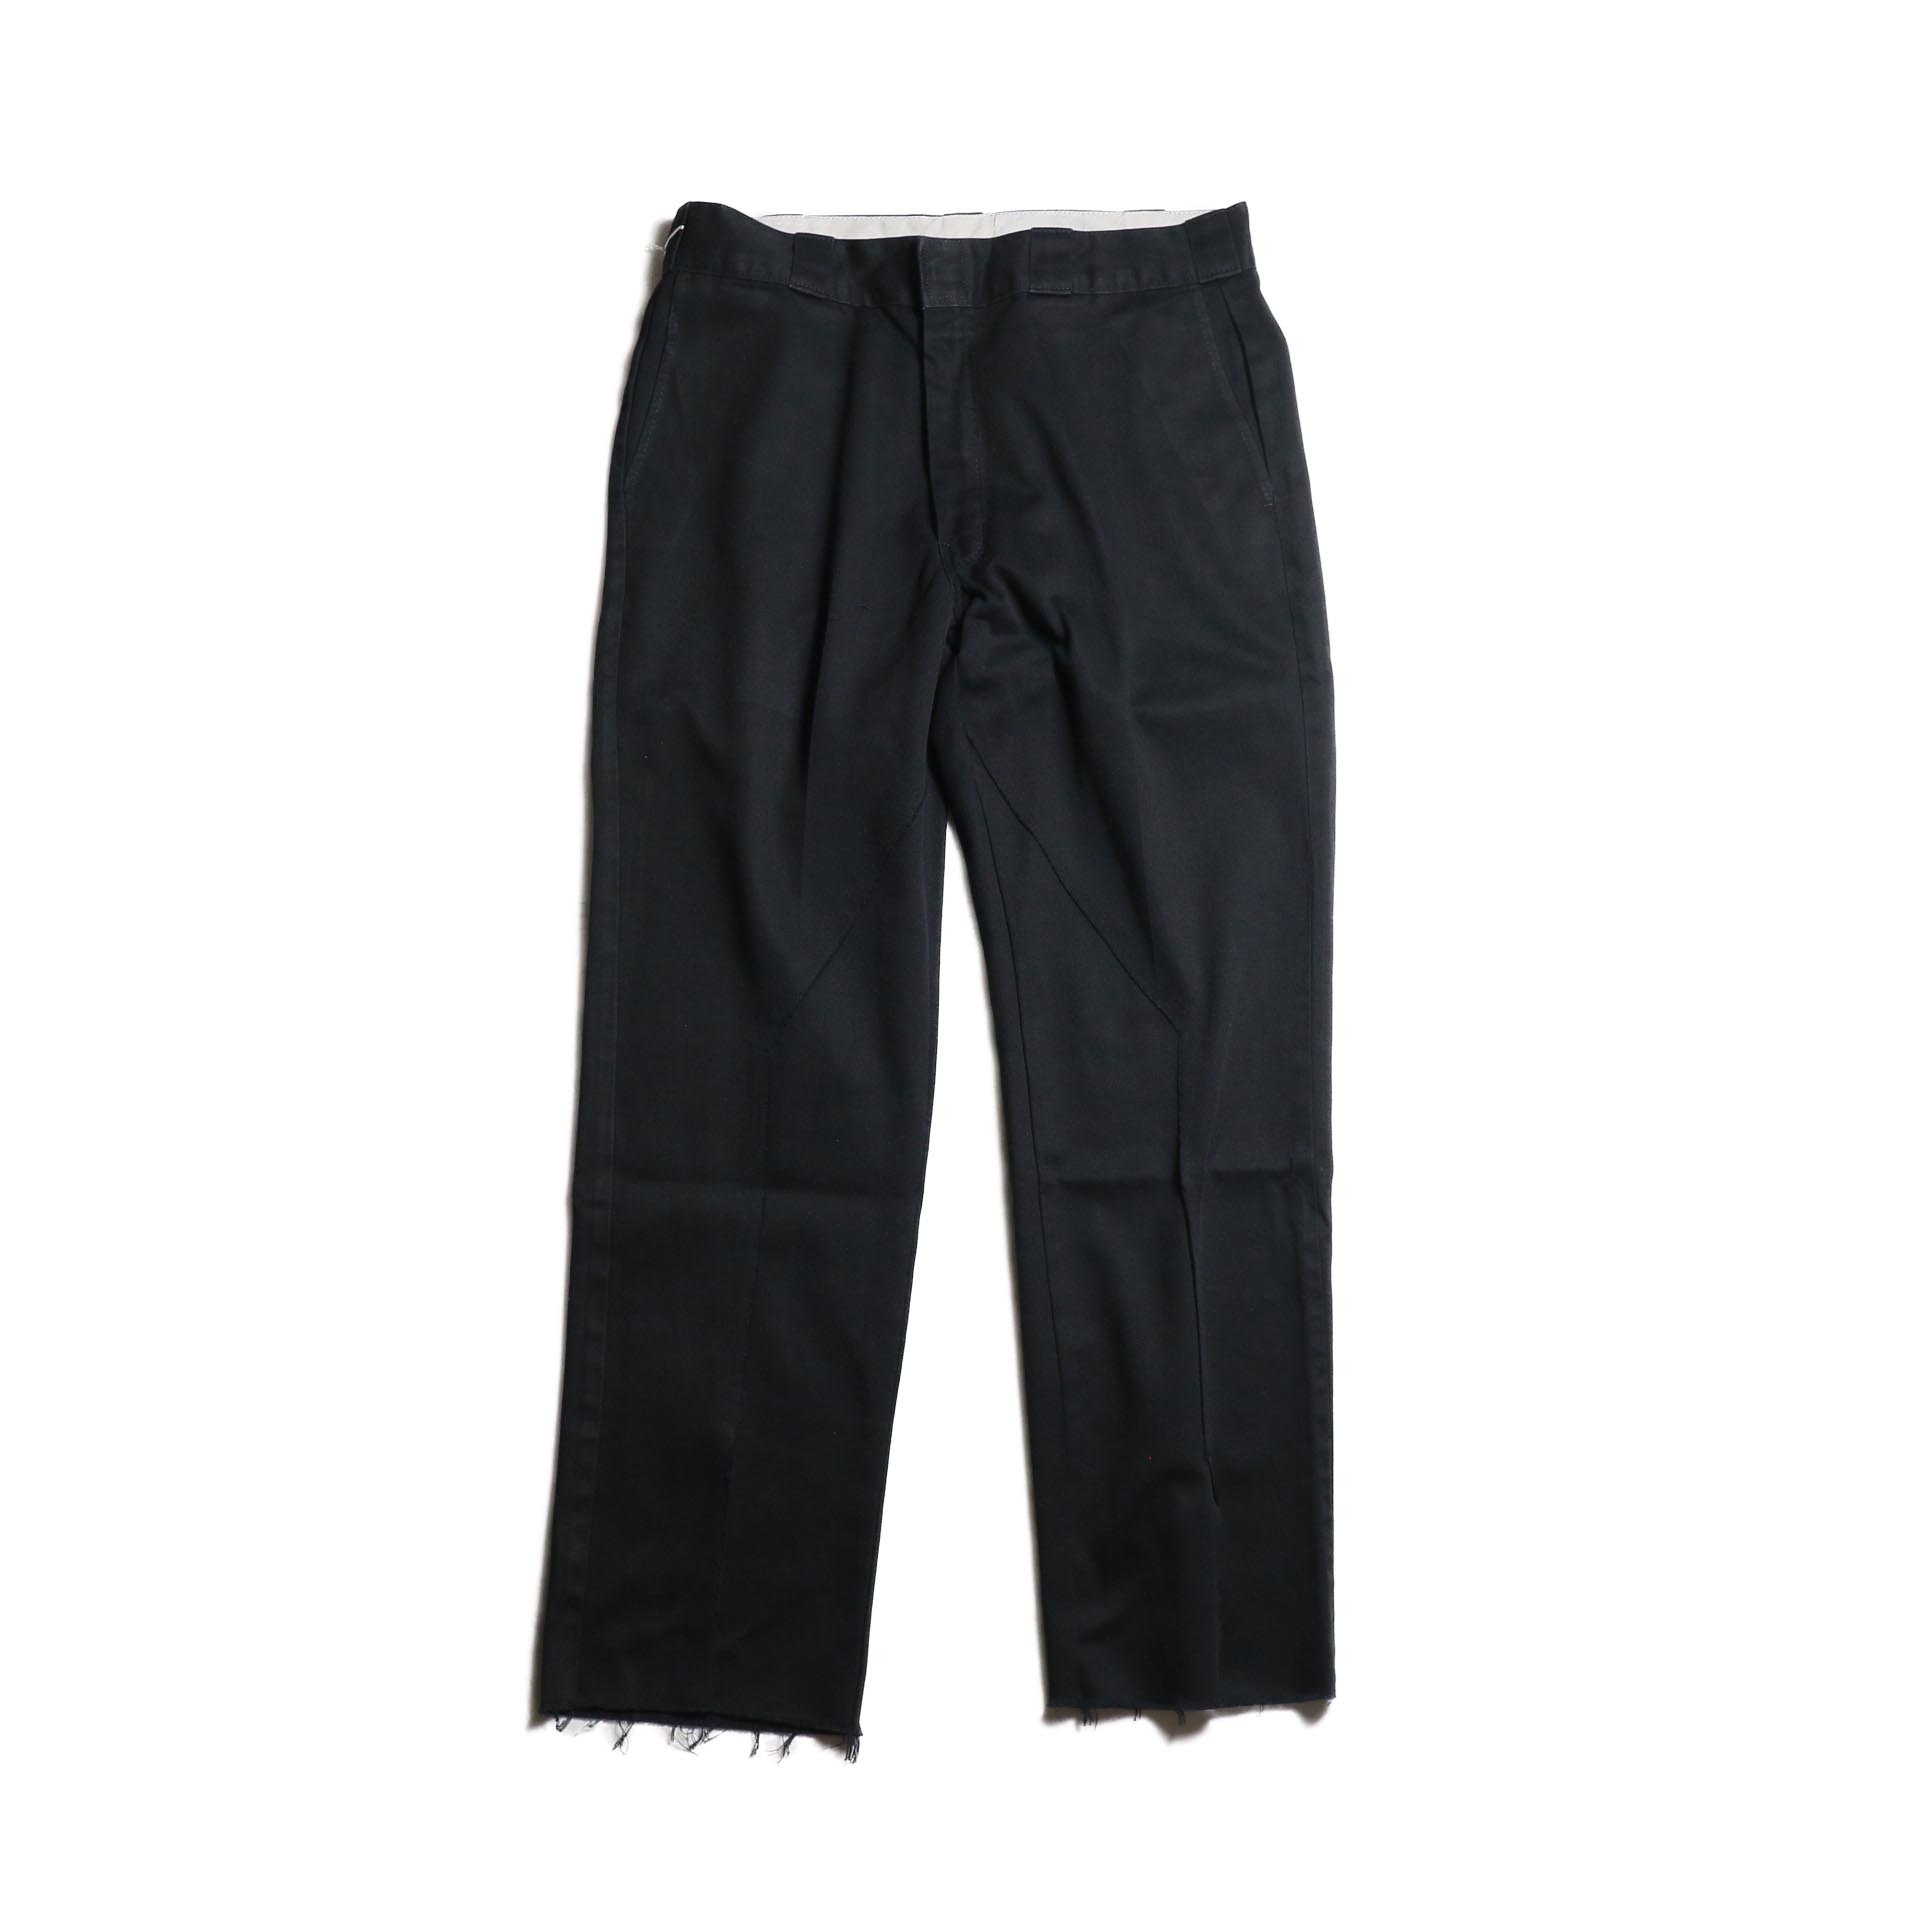 "OLD PARK / Slit Pants ""Dickies"" -Black (Lsize)"